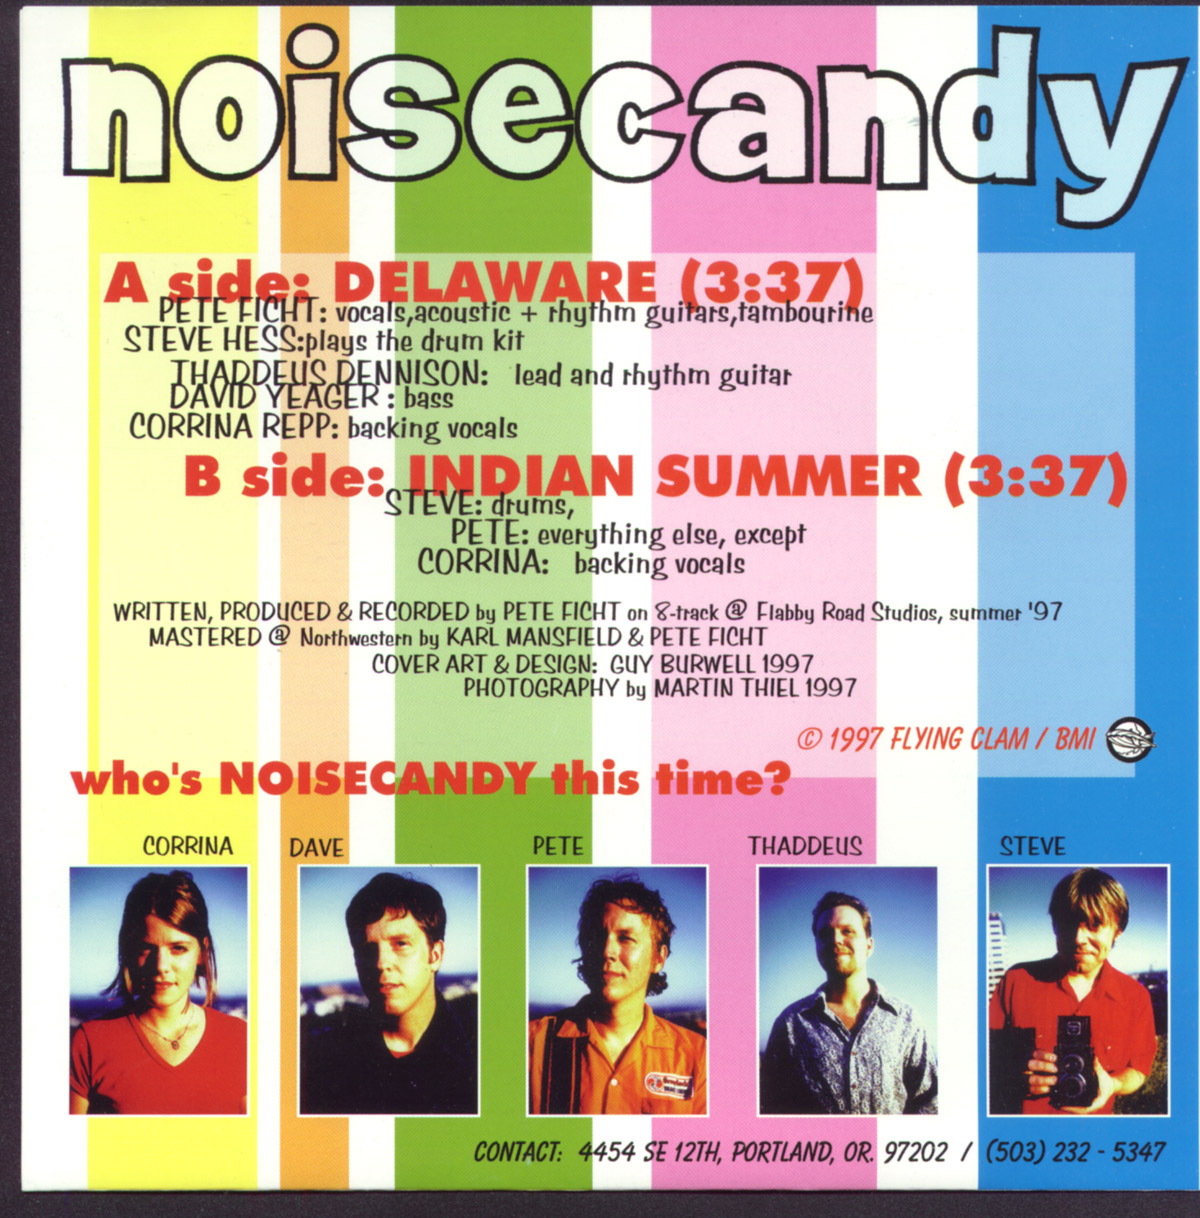 Noisecandy - Delaware single, 1997